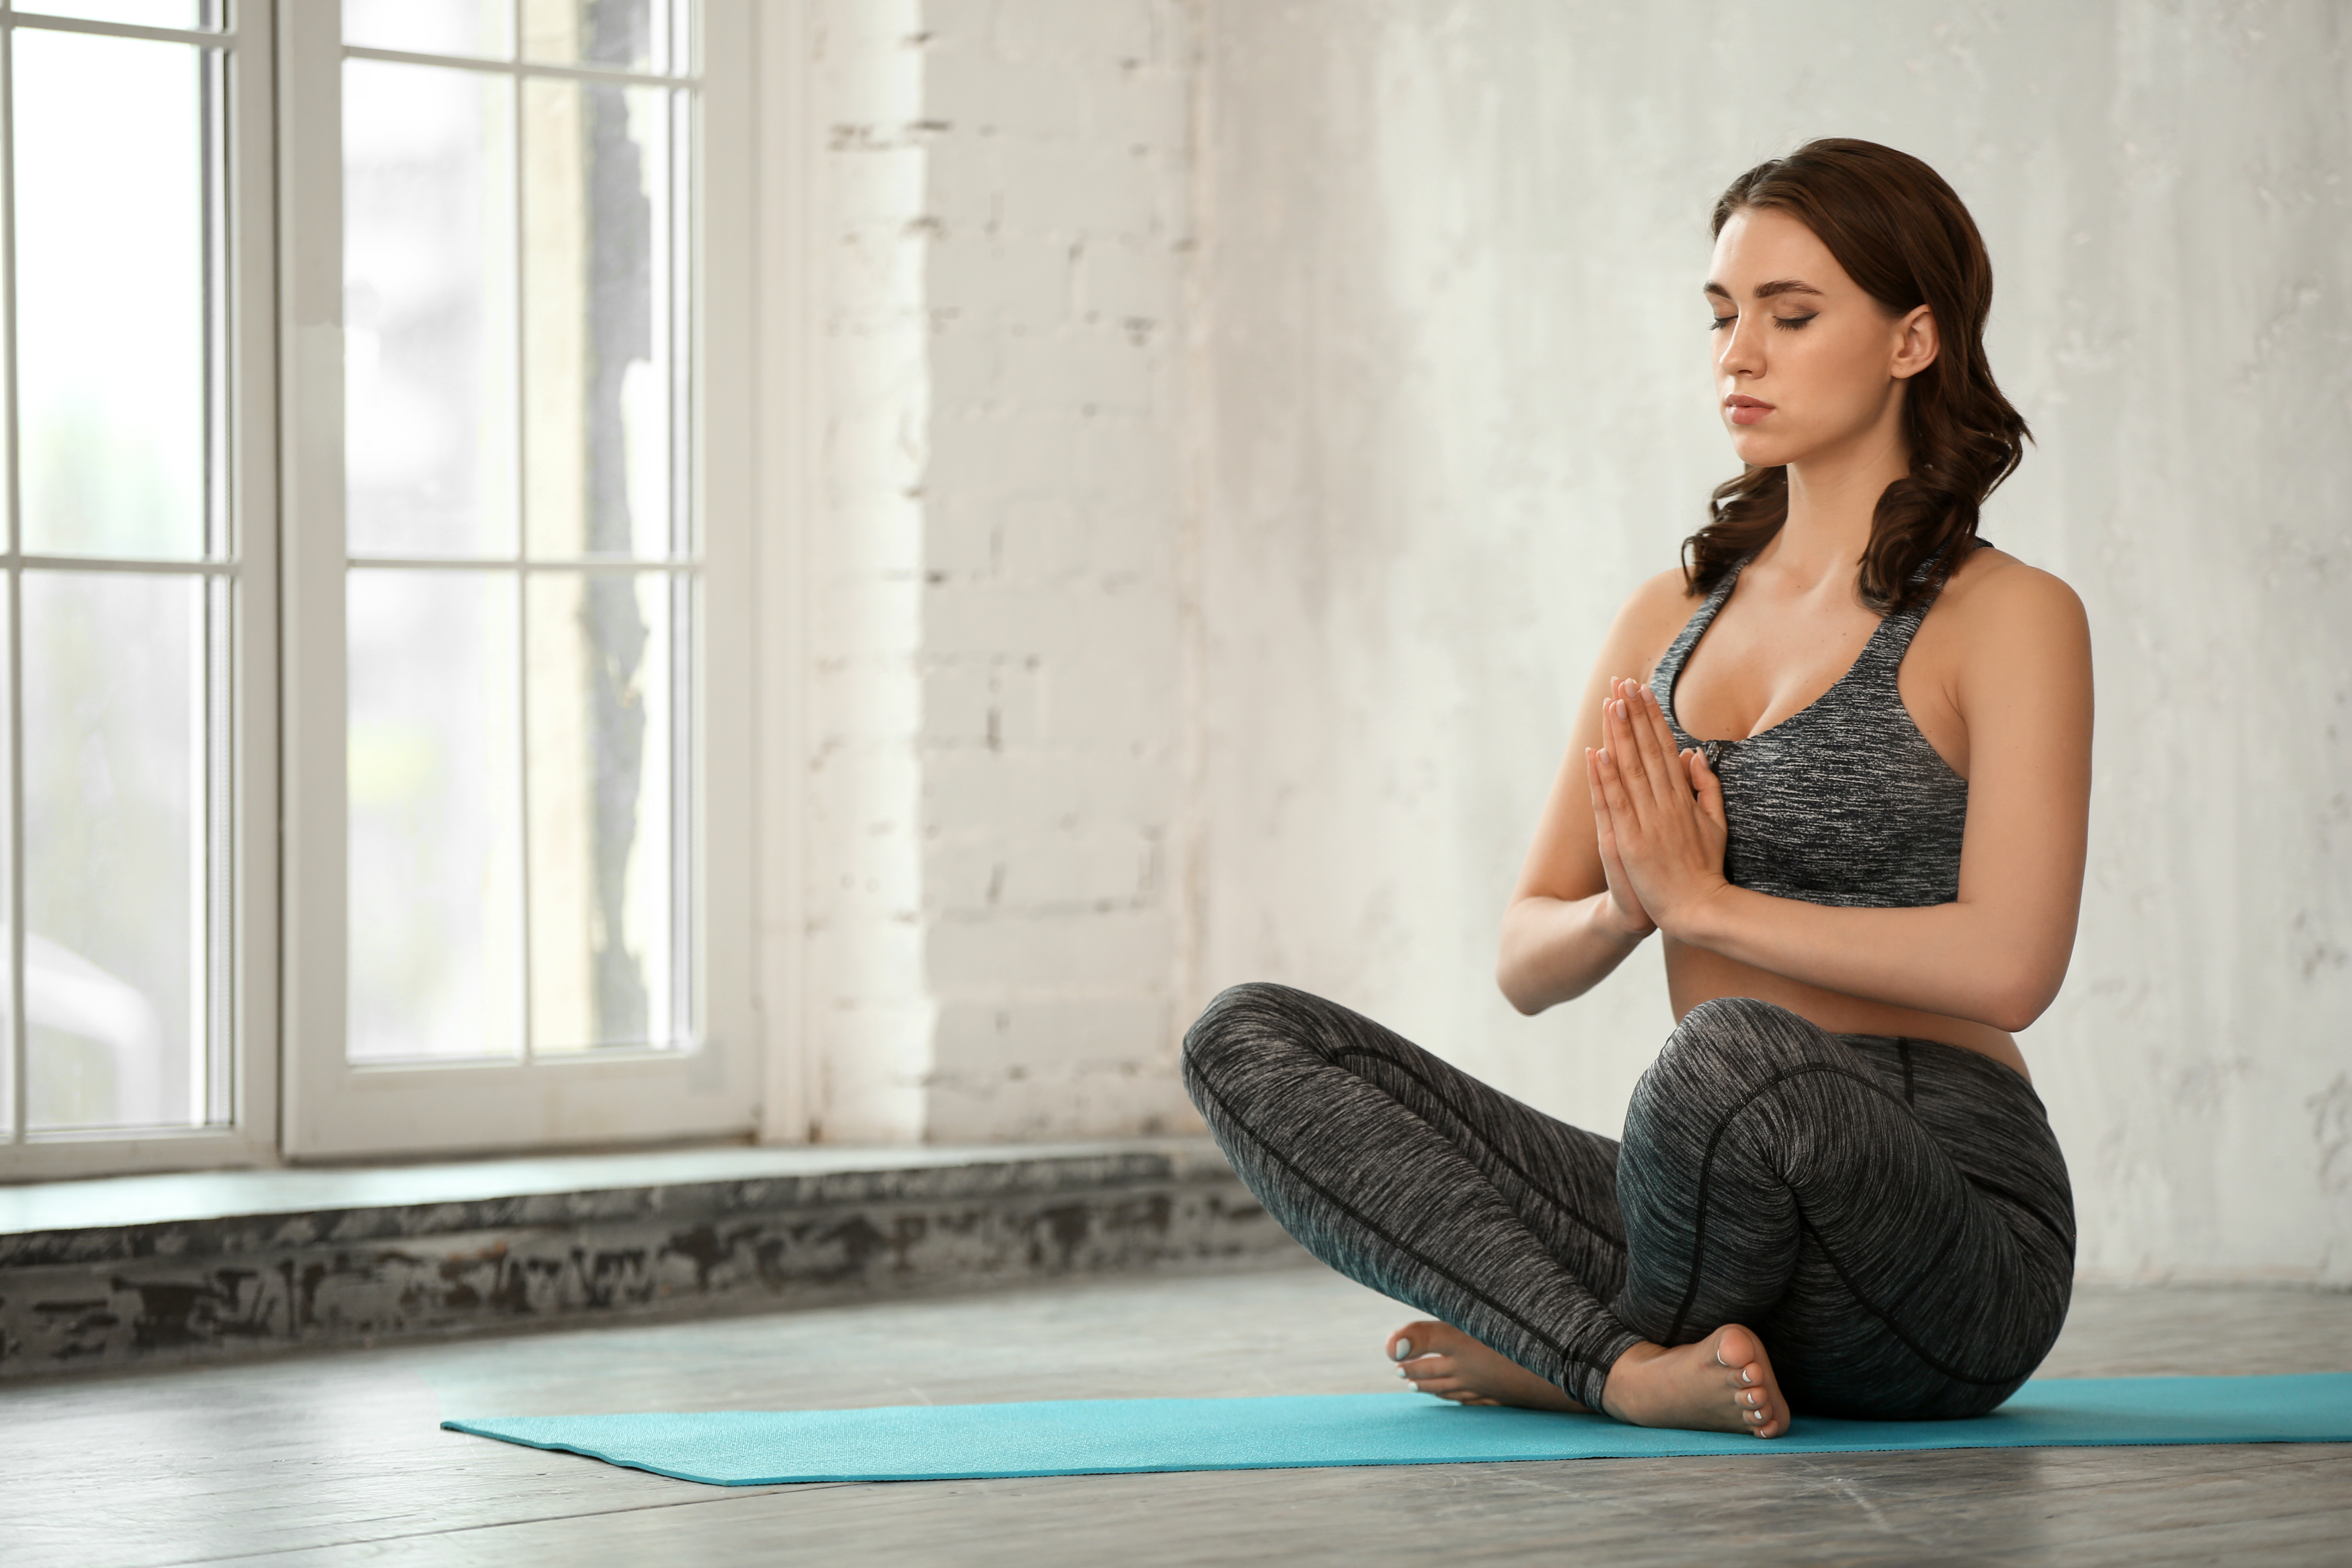 Yoga meditation, quiet time on the mat, silence, prayer, reflection